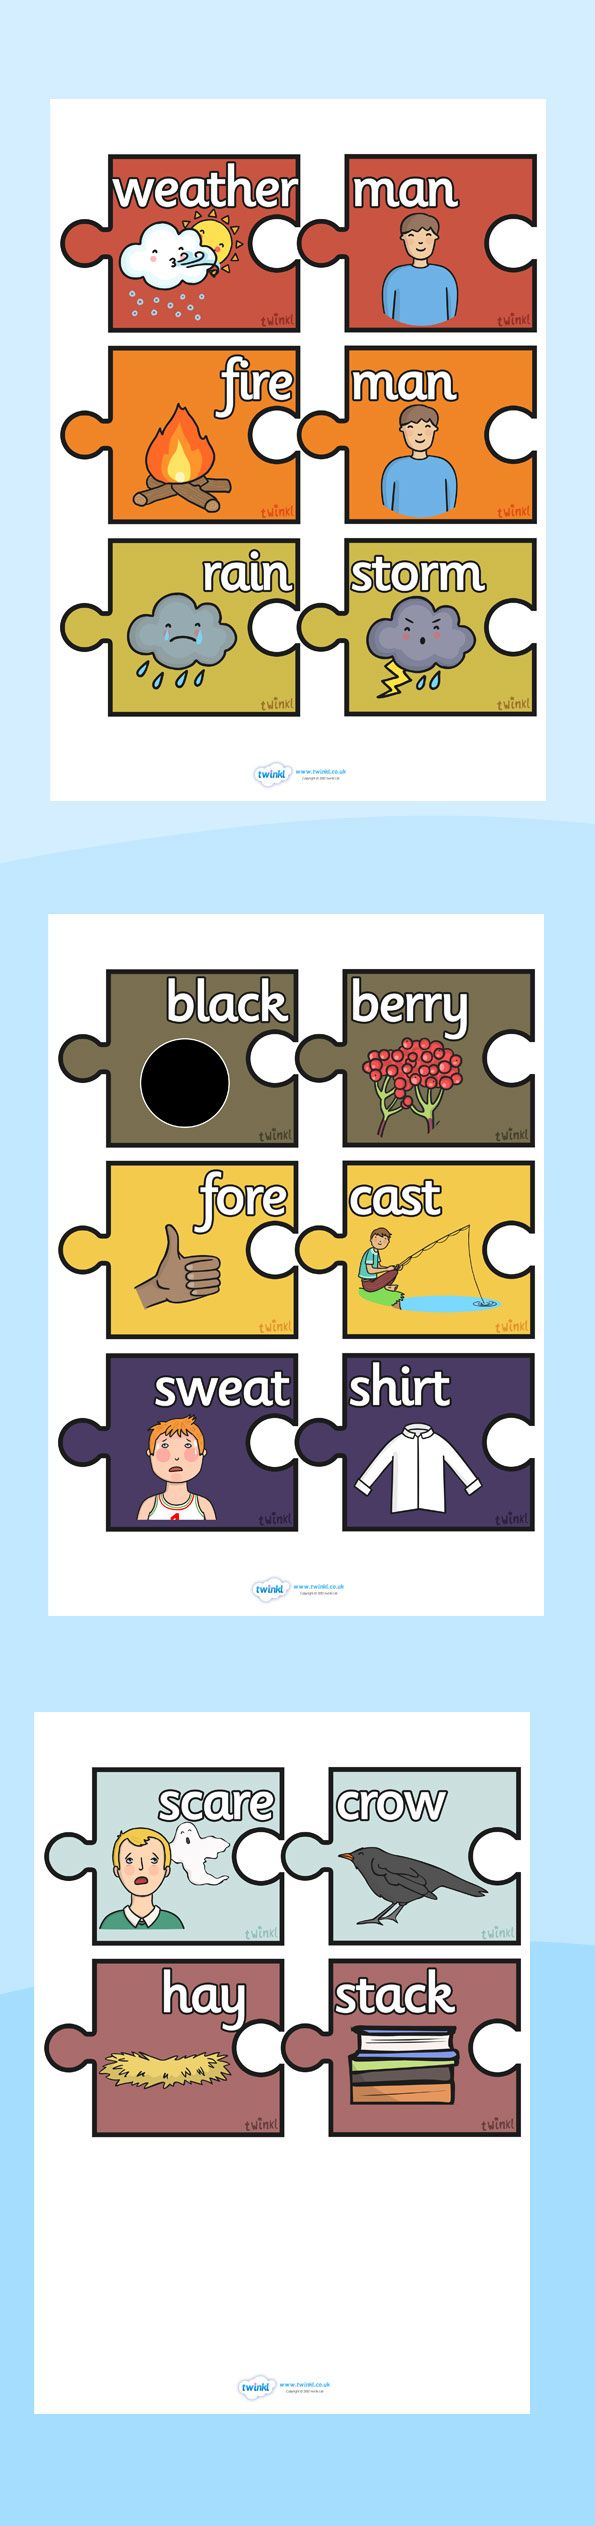 Twinkl Resources >> Autumn Compound Words Matching Activity >> Printable resources for Primary, EYFS, KS1 and SEN. Thousands of classroom displays and teaching aids! Topics, Autumn, Compound Words, Matching Cards, Activities